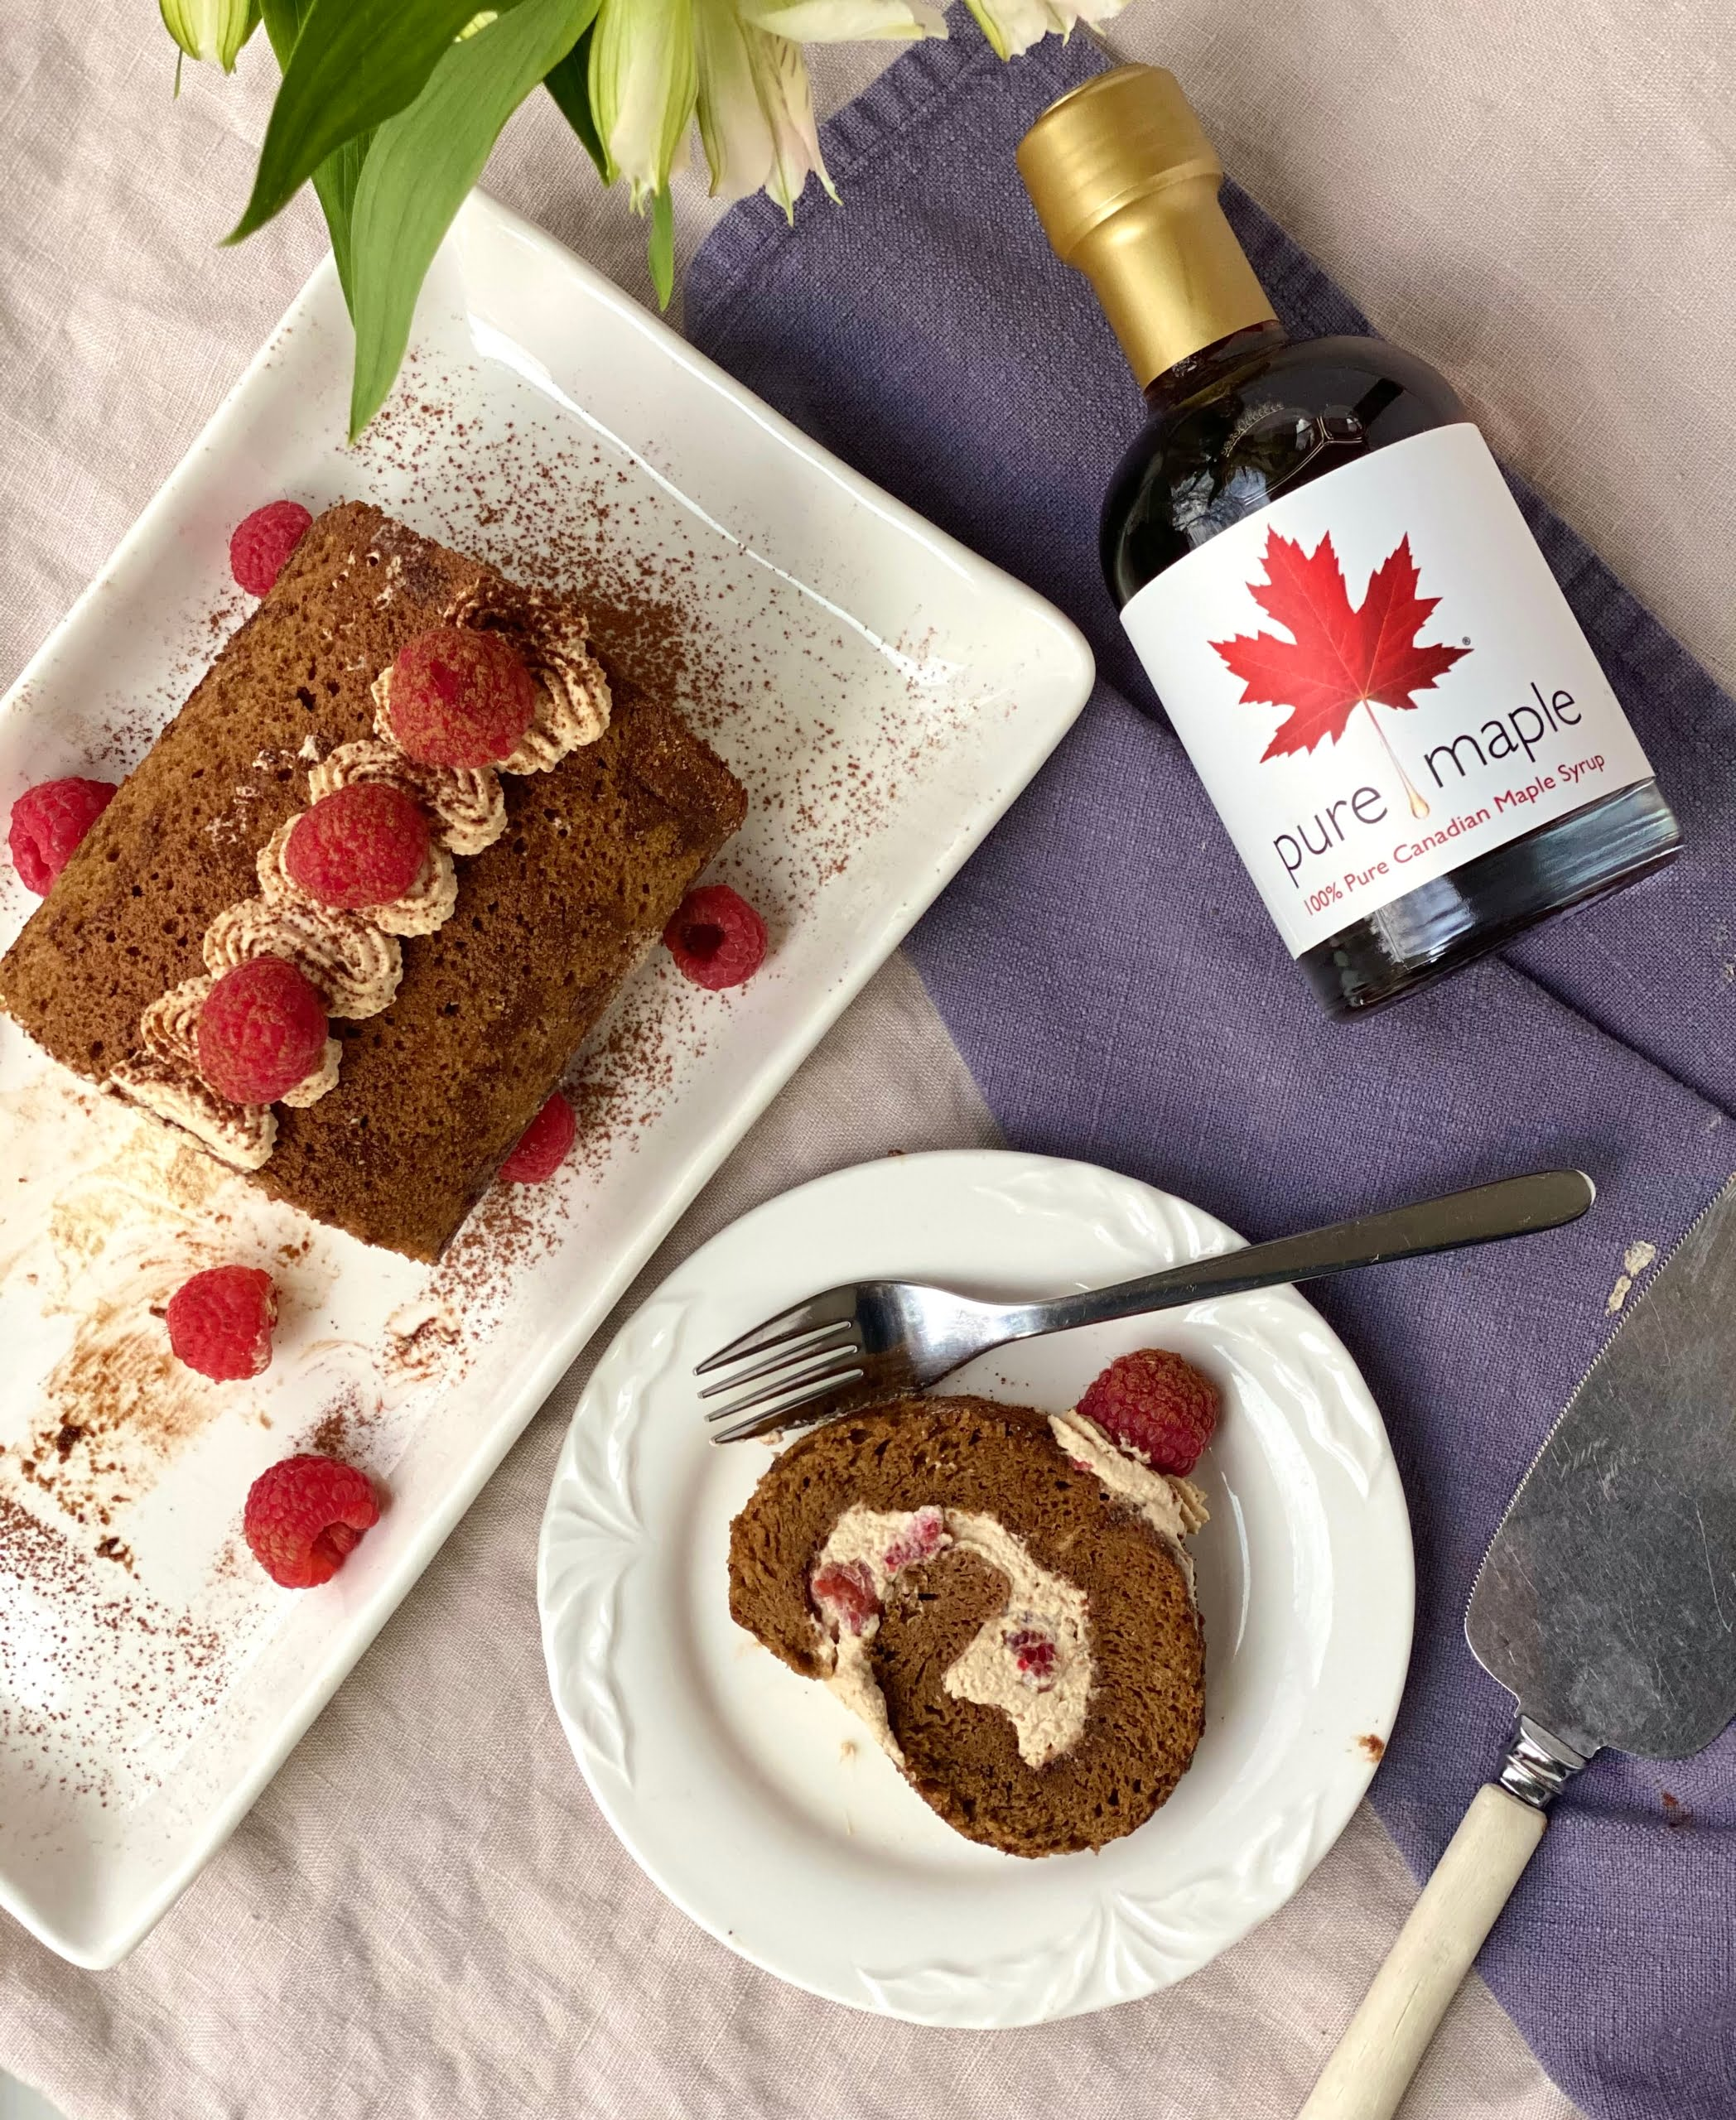 Maple Espresso Roll with Raspberries showing a slice cut and maple syrup bottle - Pure Maple